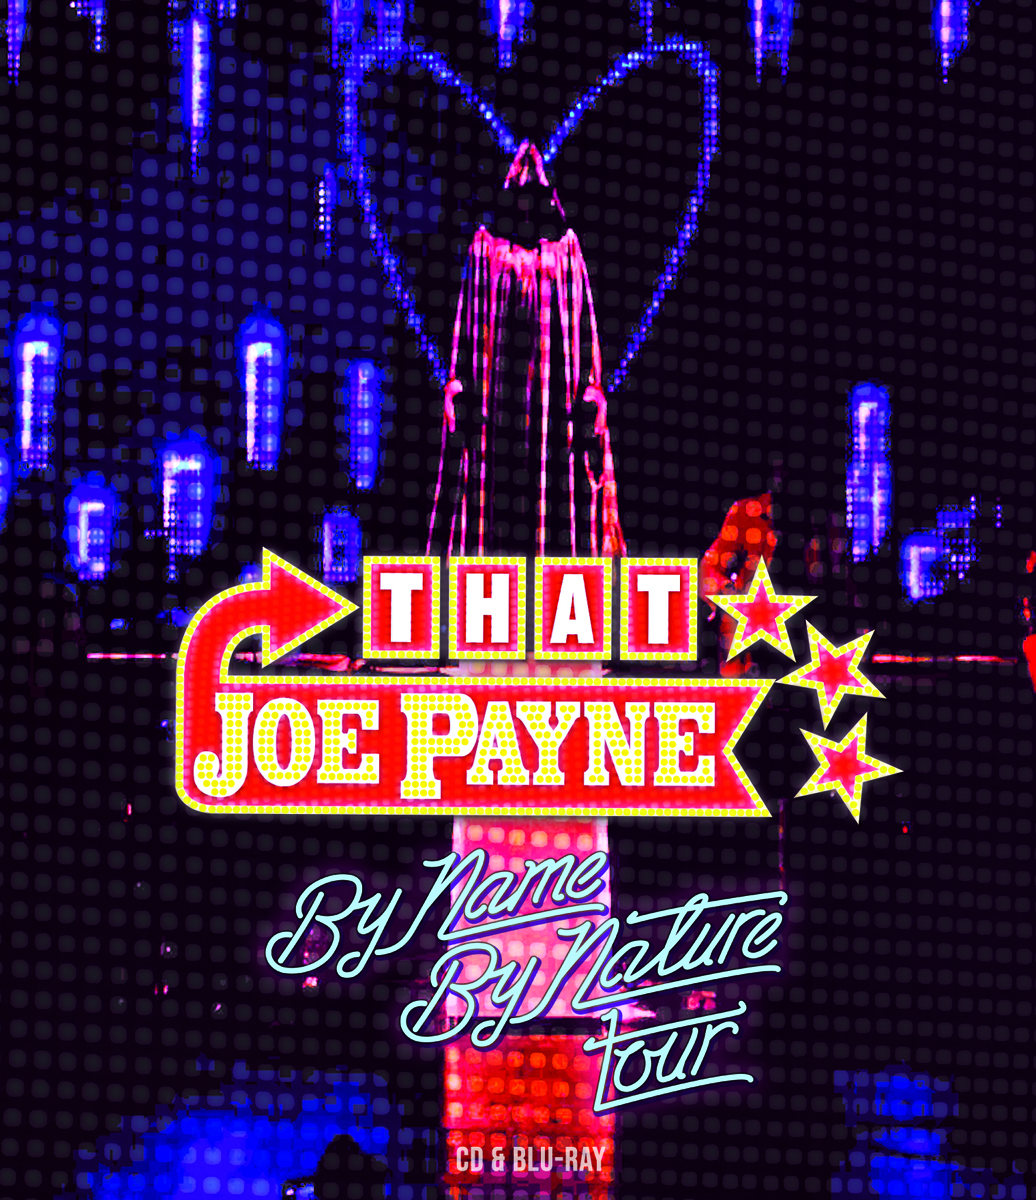 that joe payne by name by nature tour